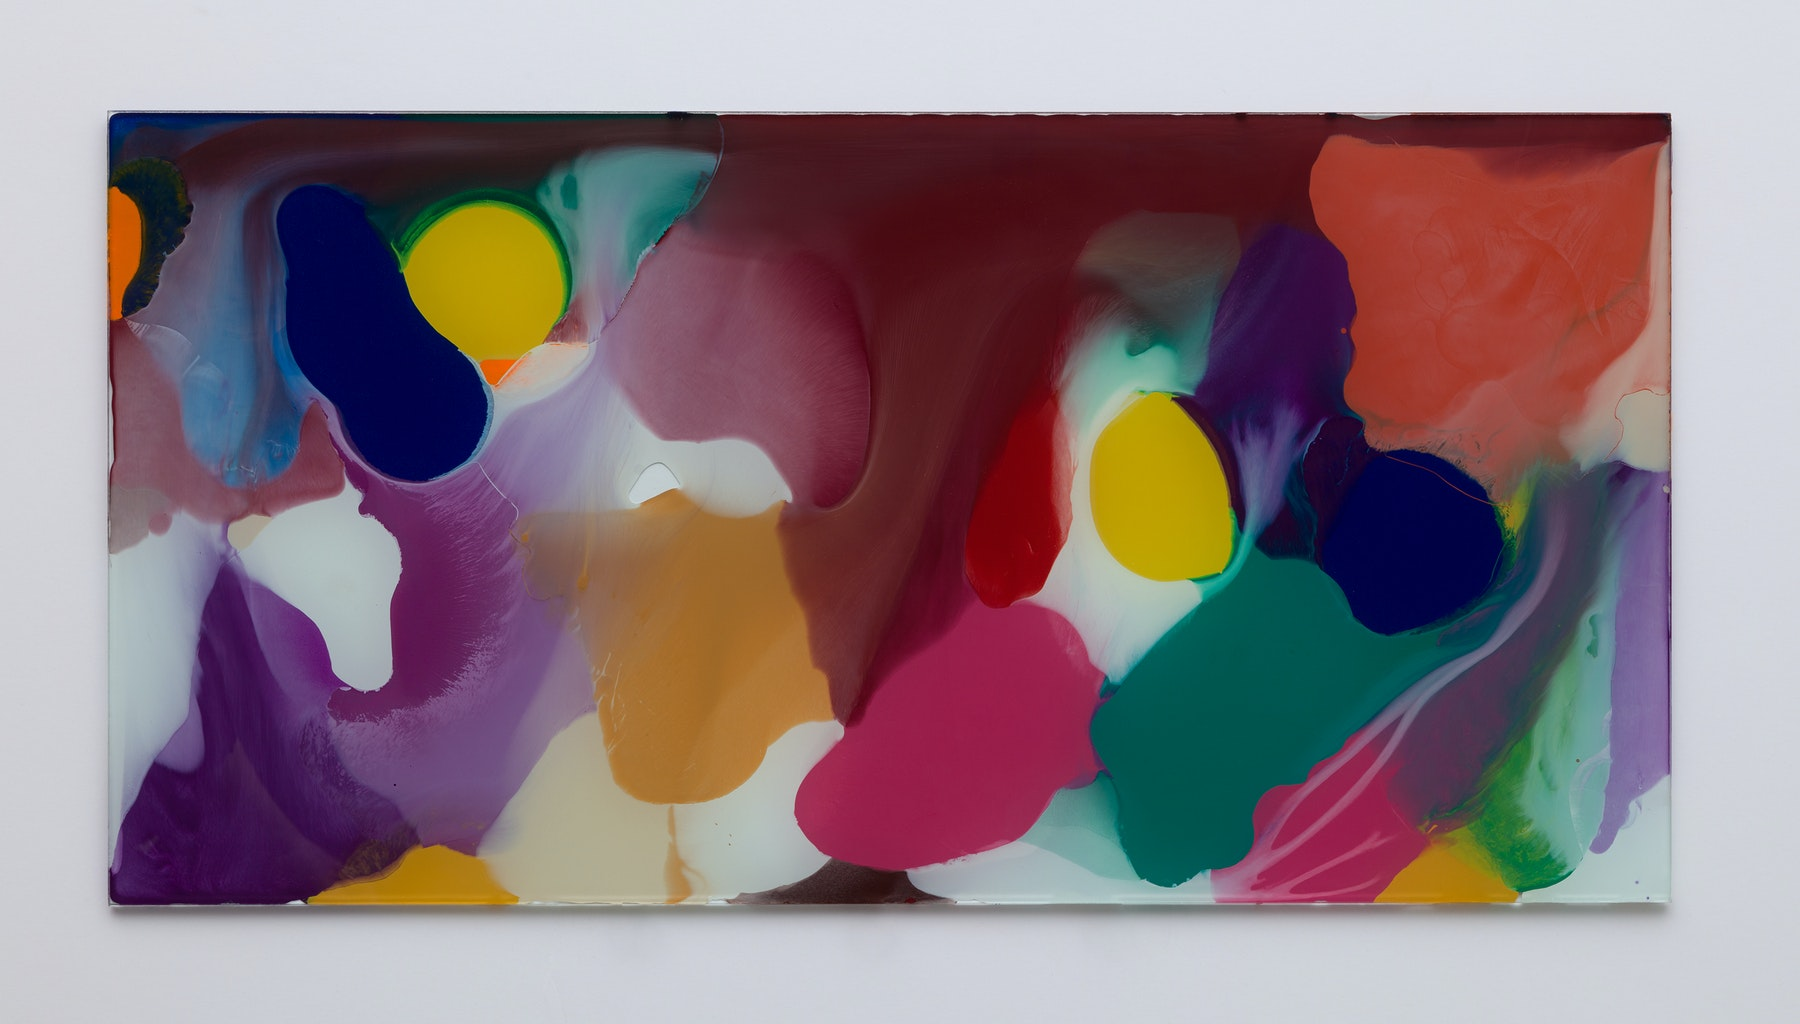 """Yunhee Min """"Up Close in Distance (variation study b3),"""" 2018 Enamel on laminated glass 18.5 x 36.5"""" [HxW] (46.99 x 92.71 cm) Inventory #MIN338 Courtesy of the artist and Vielmetter Los Angeles Photo credit: Brica Wilcox"""